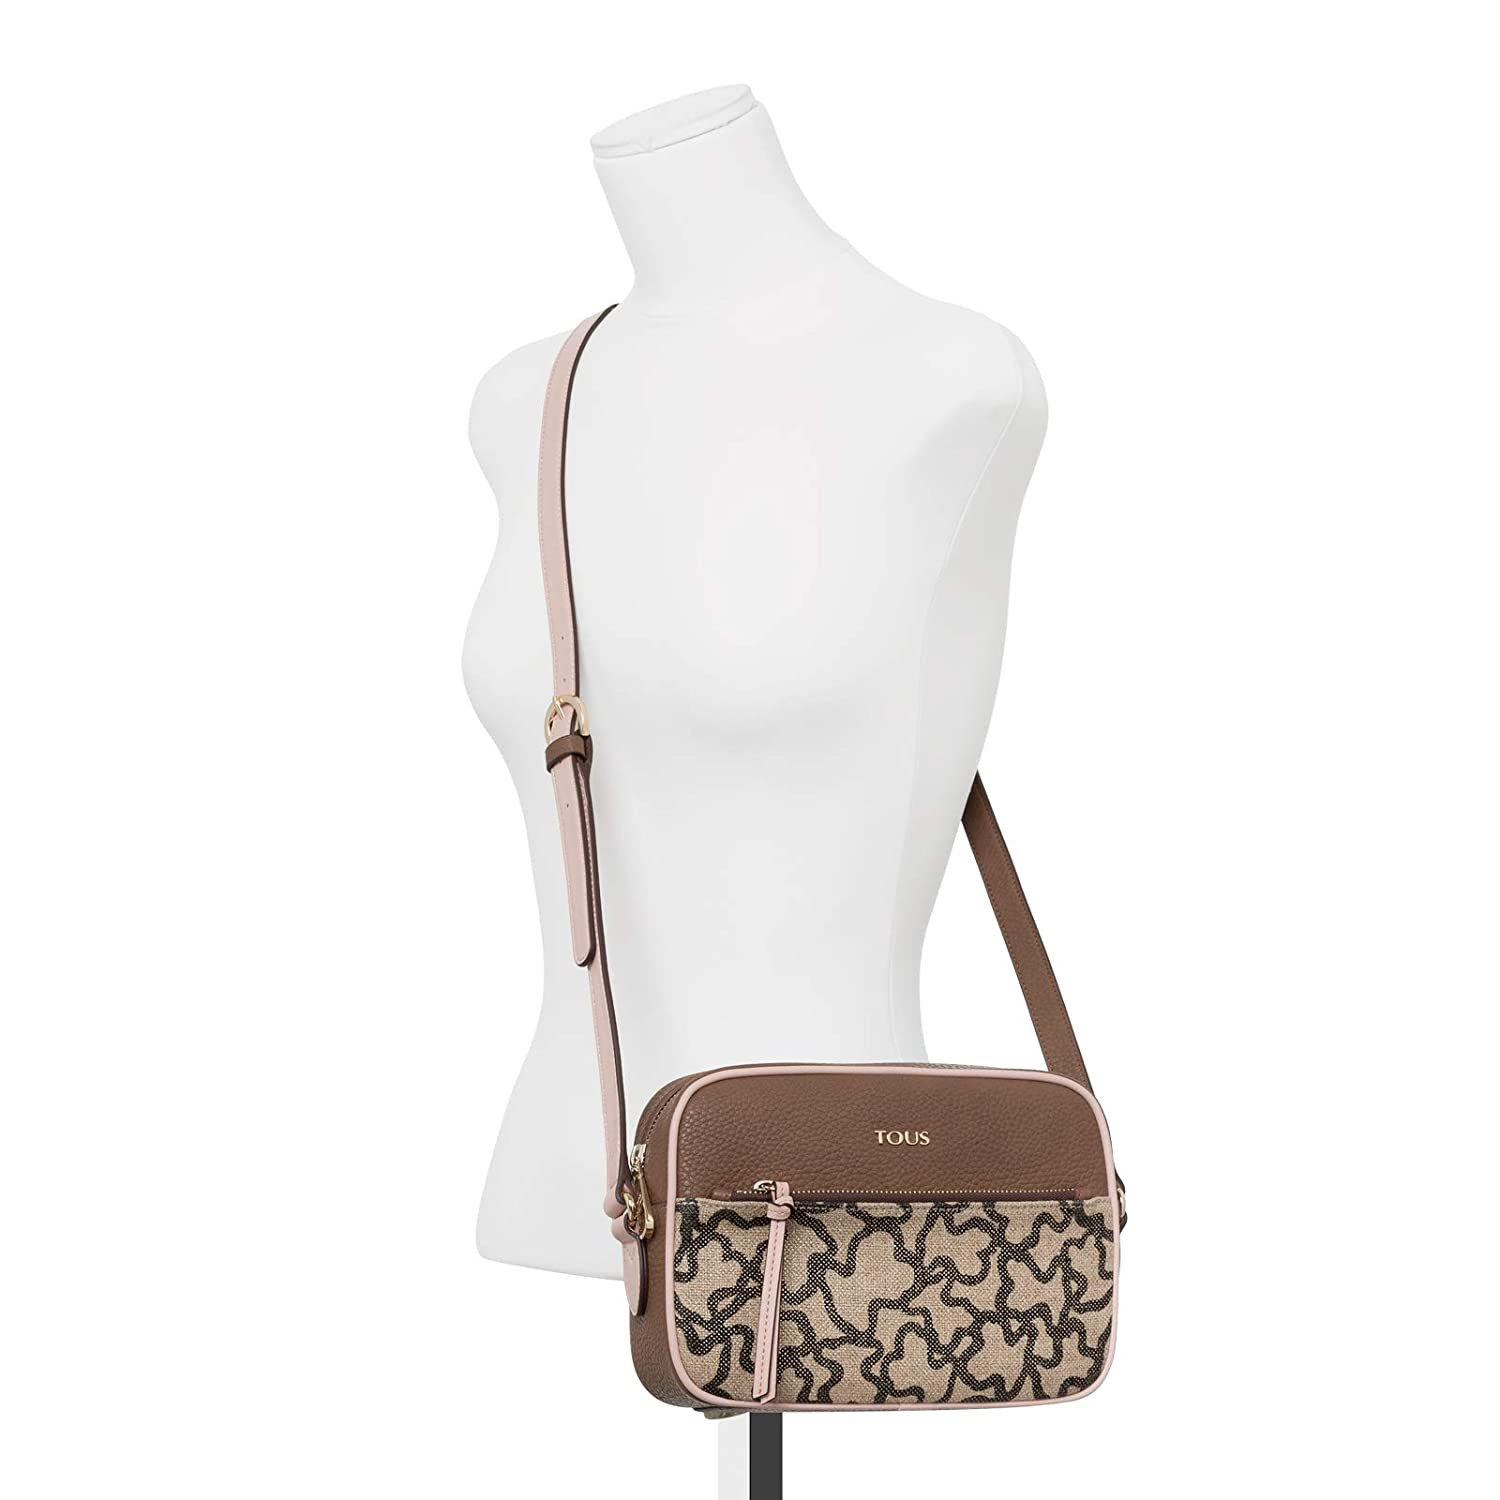 Amazon.com: TOUS Elice New Crossbody Bag: Shoes